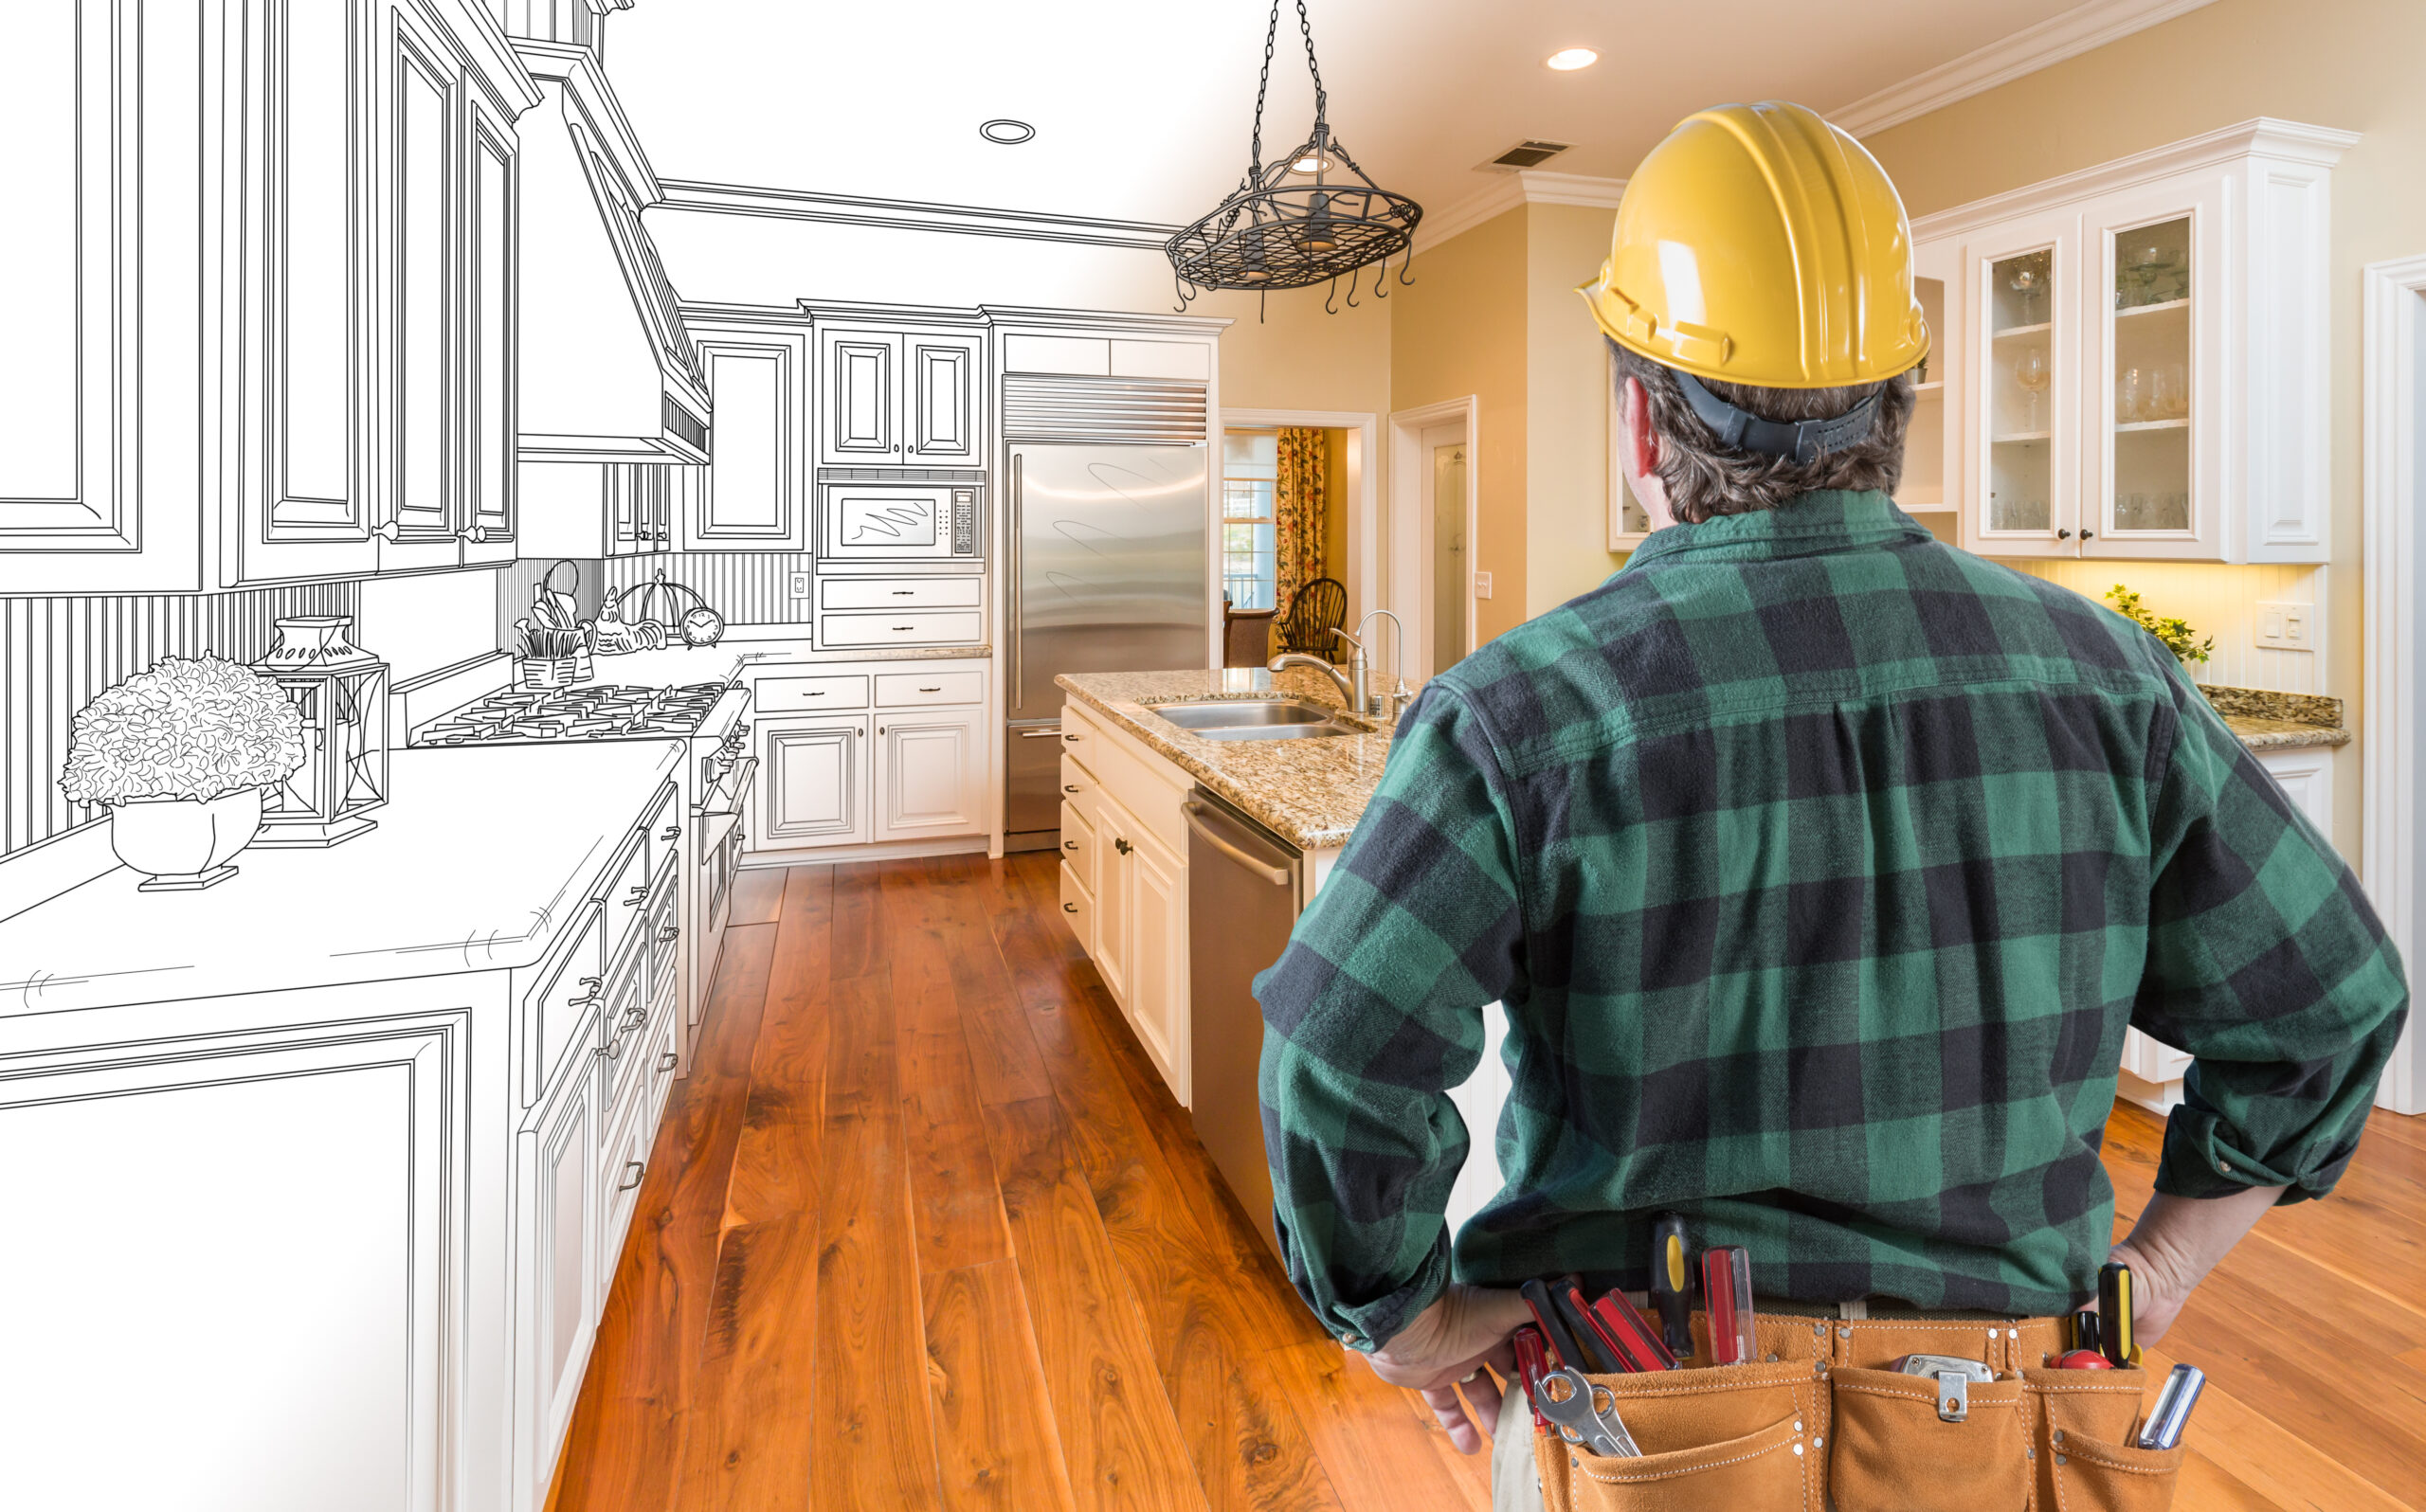 Home Tulsa Home Remodeling Kitchen Cabinets Carpentery